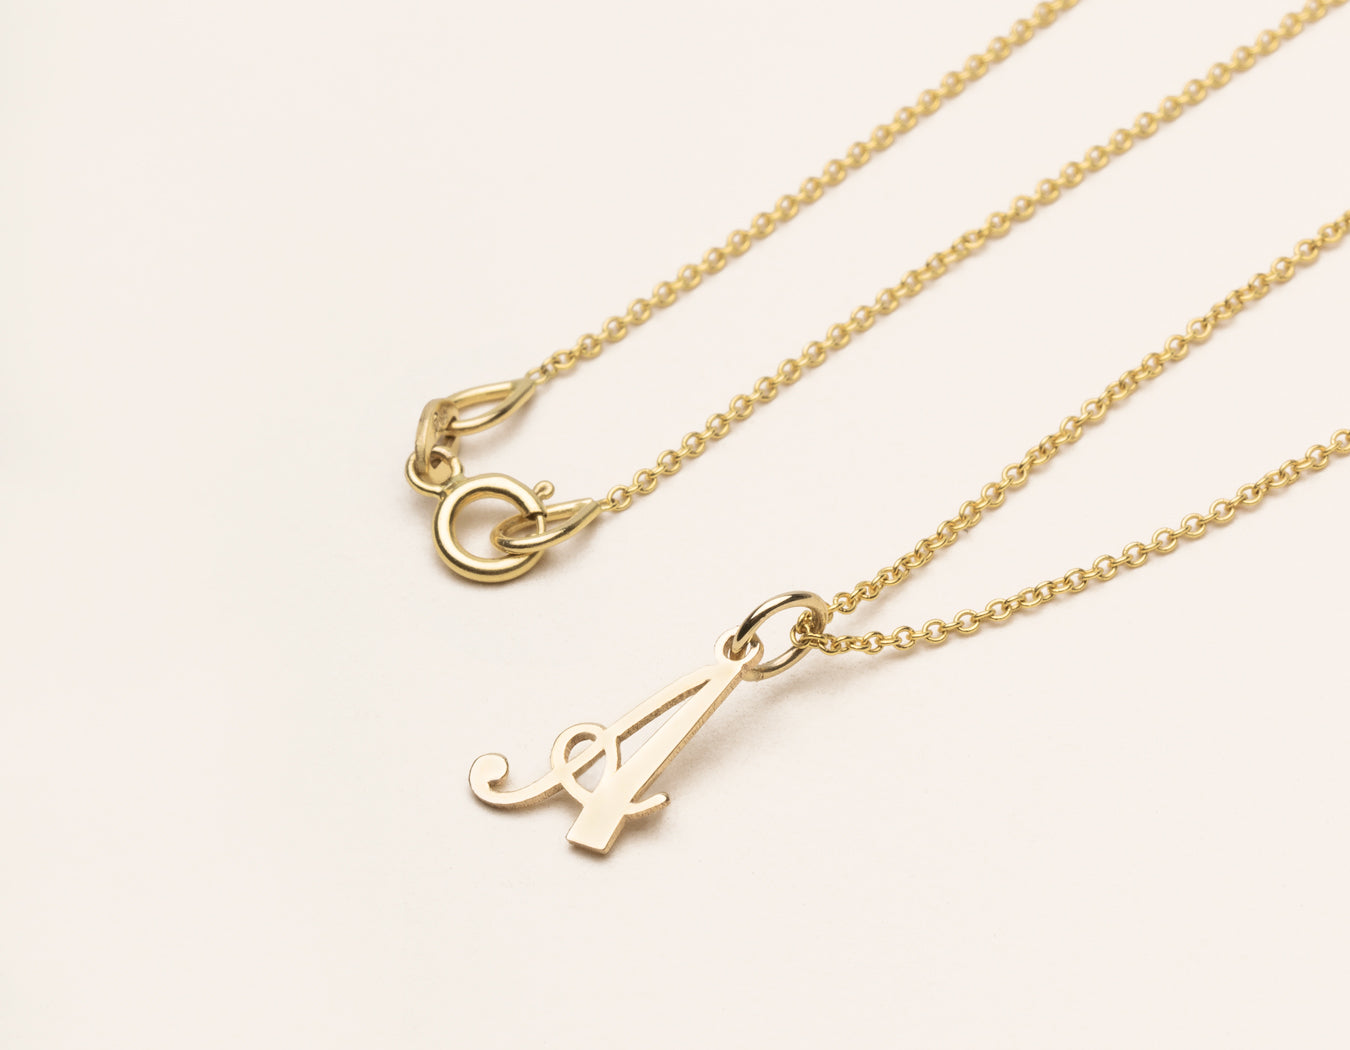 vrai & Oro modern minimalist 14k Solid Gold Letter Pendant Necklace on oval link chain with spring ring clasp, 14K Yellow Gold